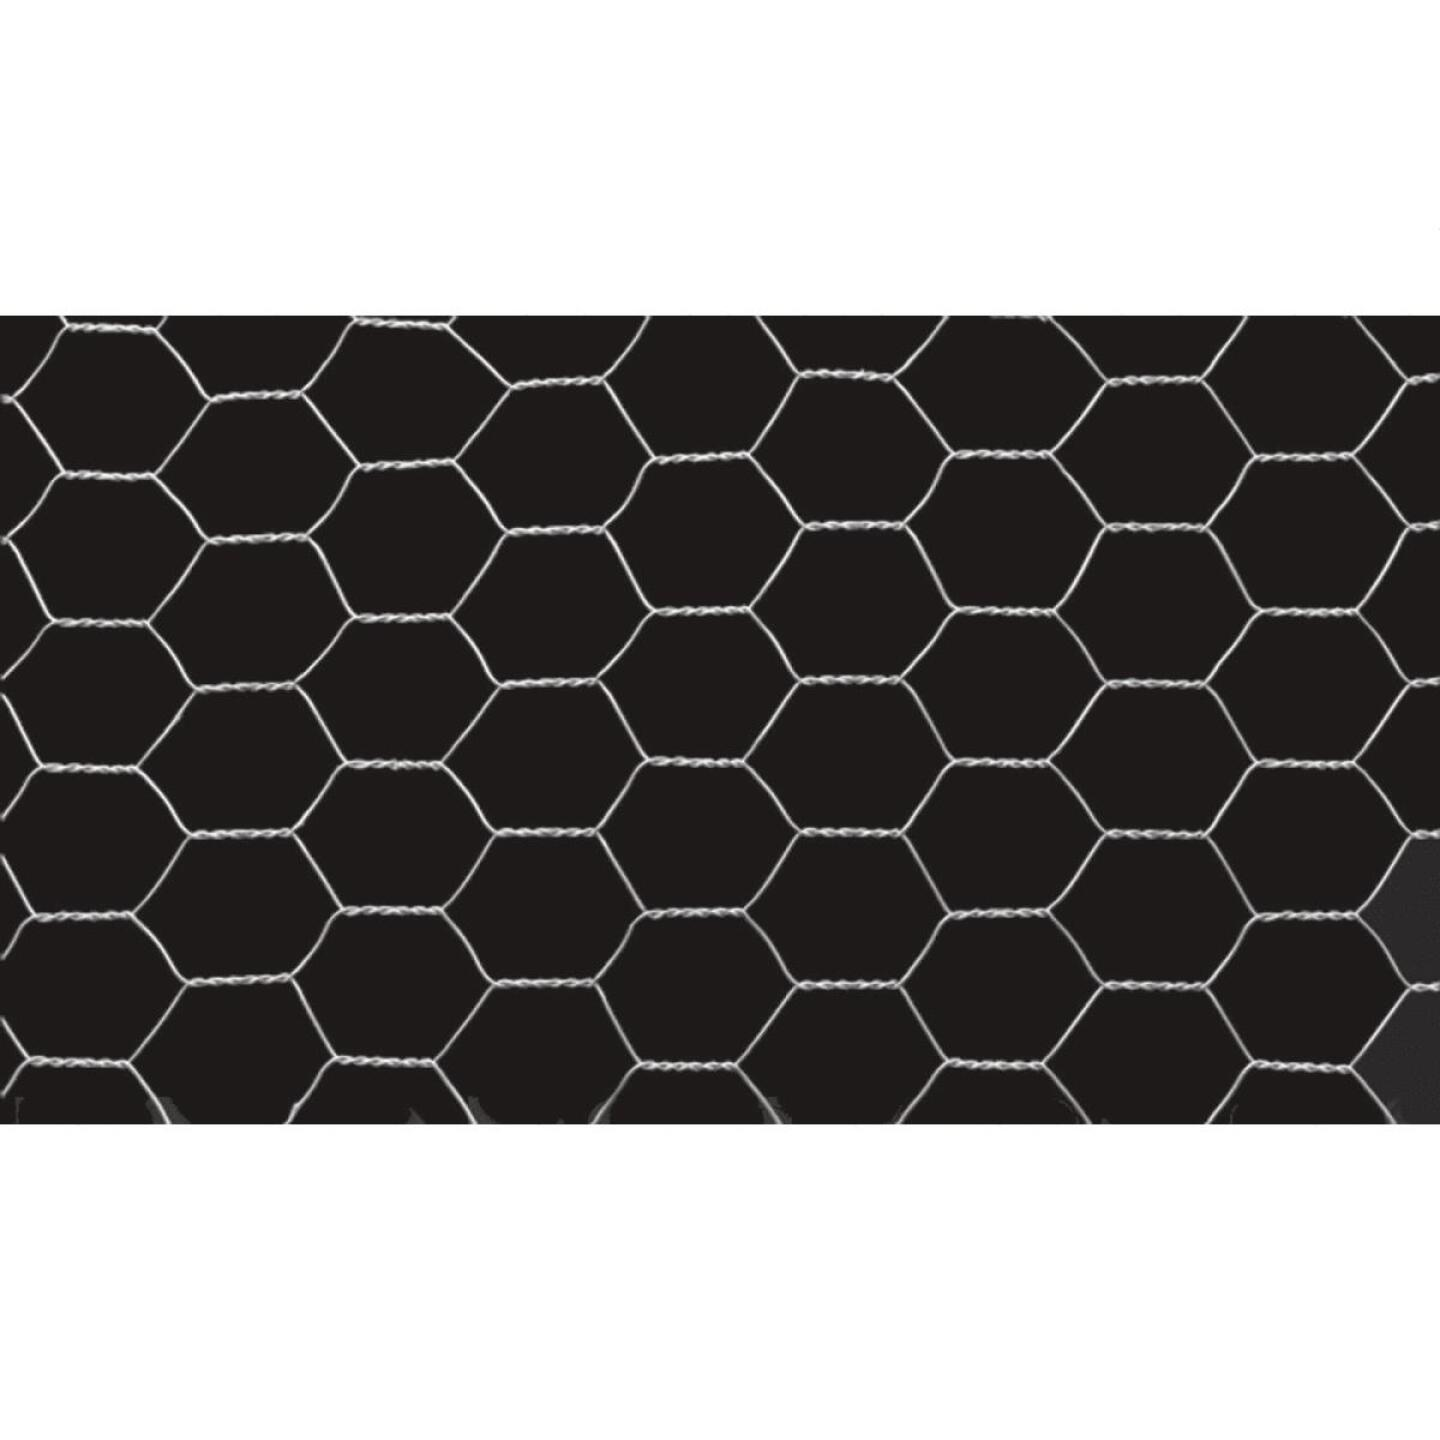 1/2 In. x 24 In. H. x 10 Ft. L. Hexagonal Wire Poultry Netting Image 4